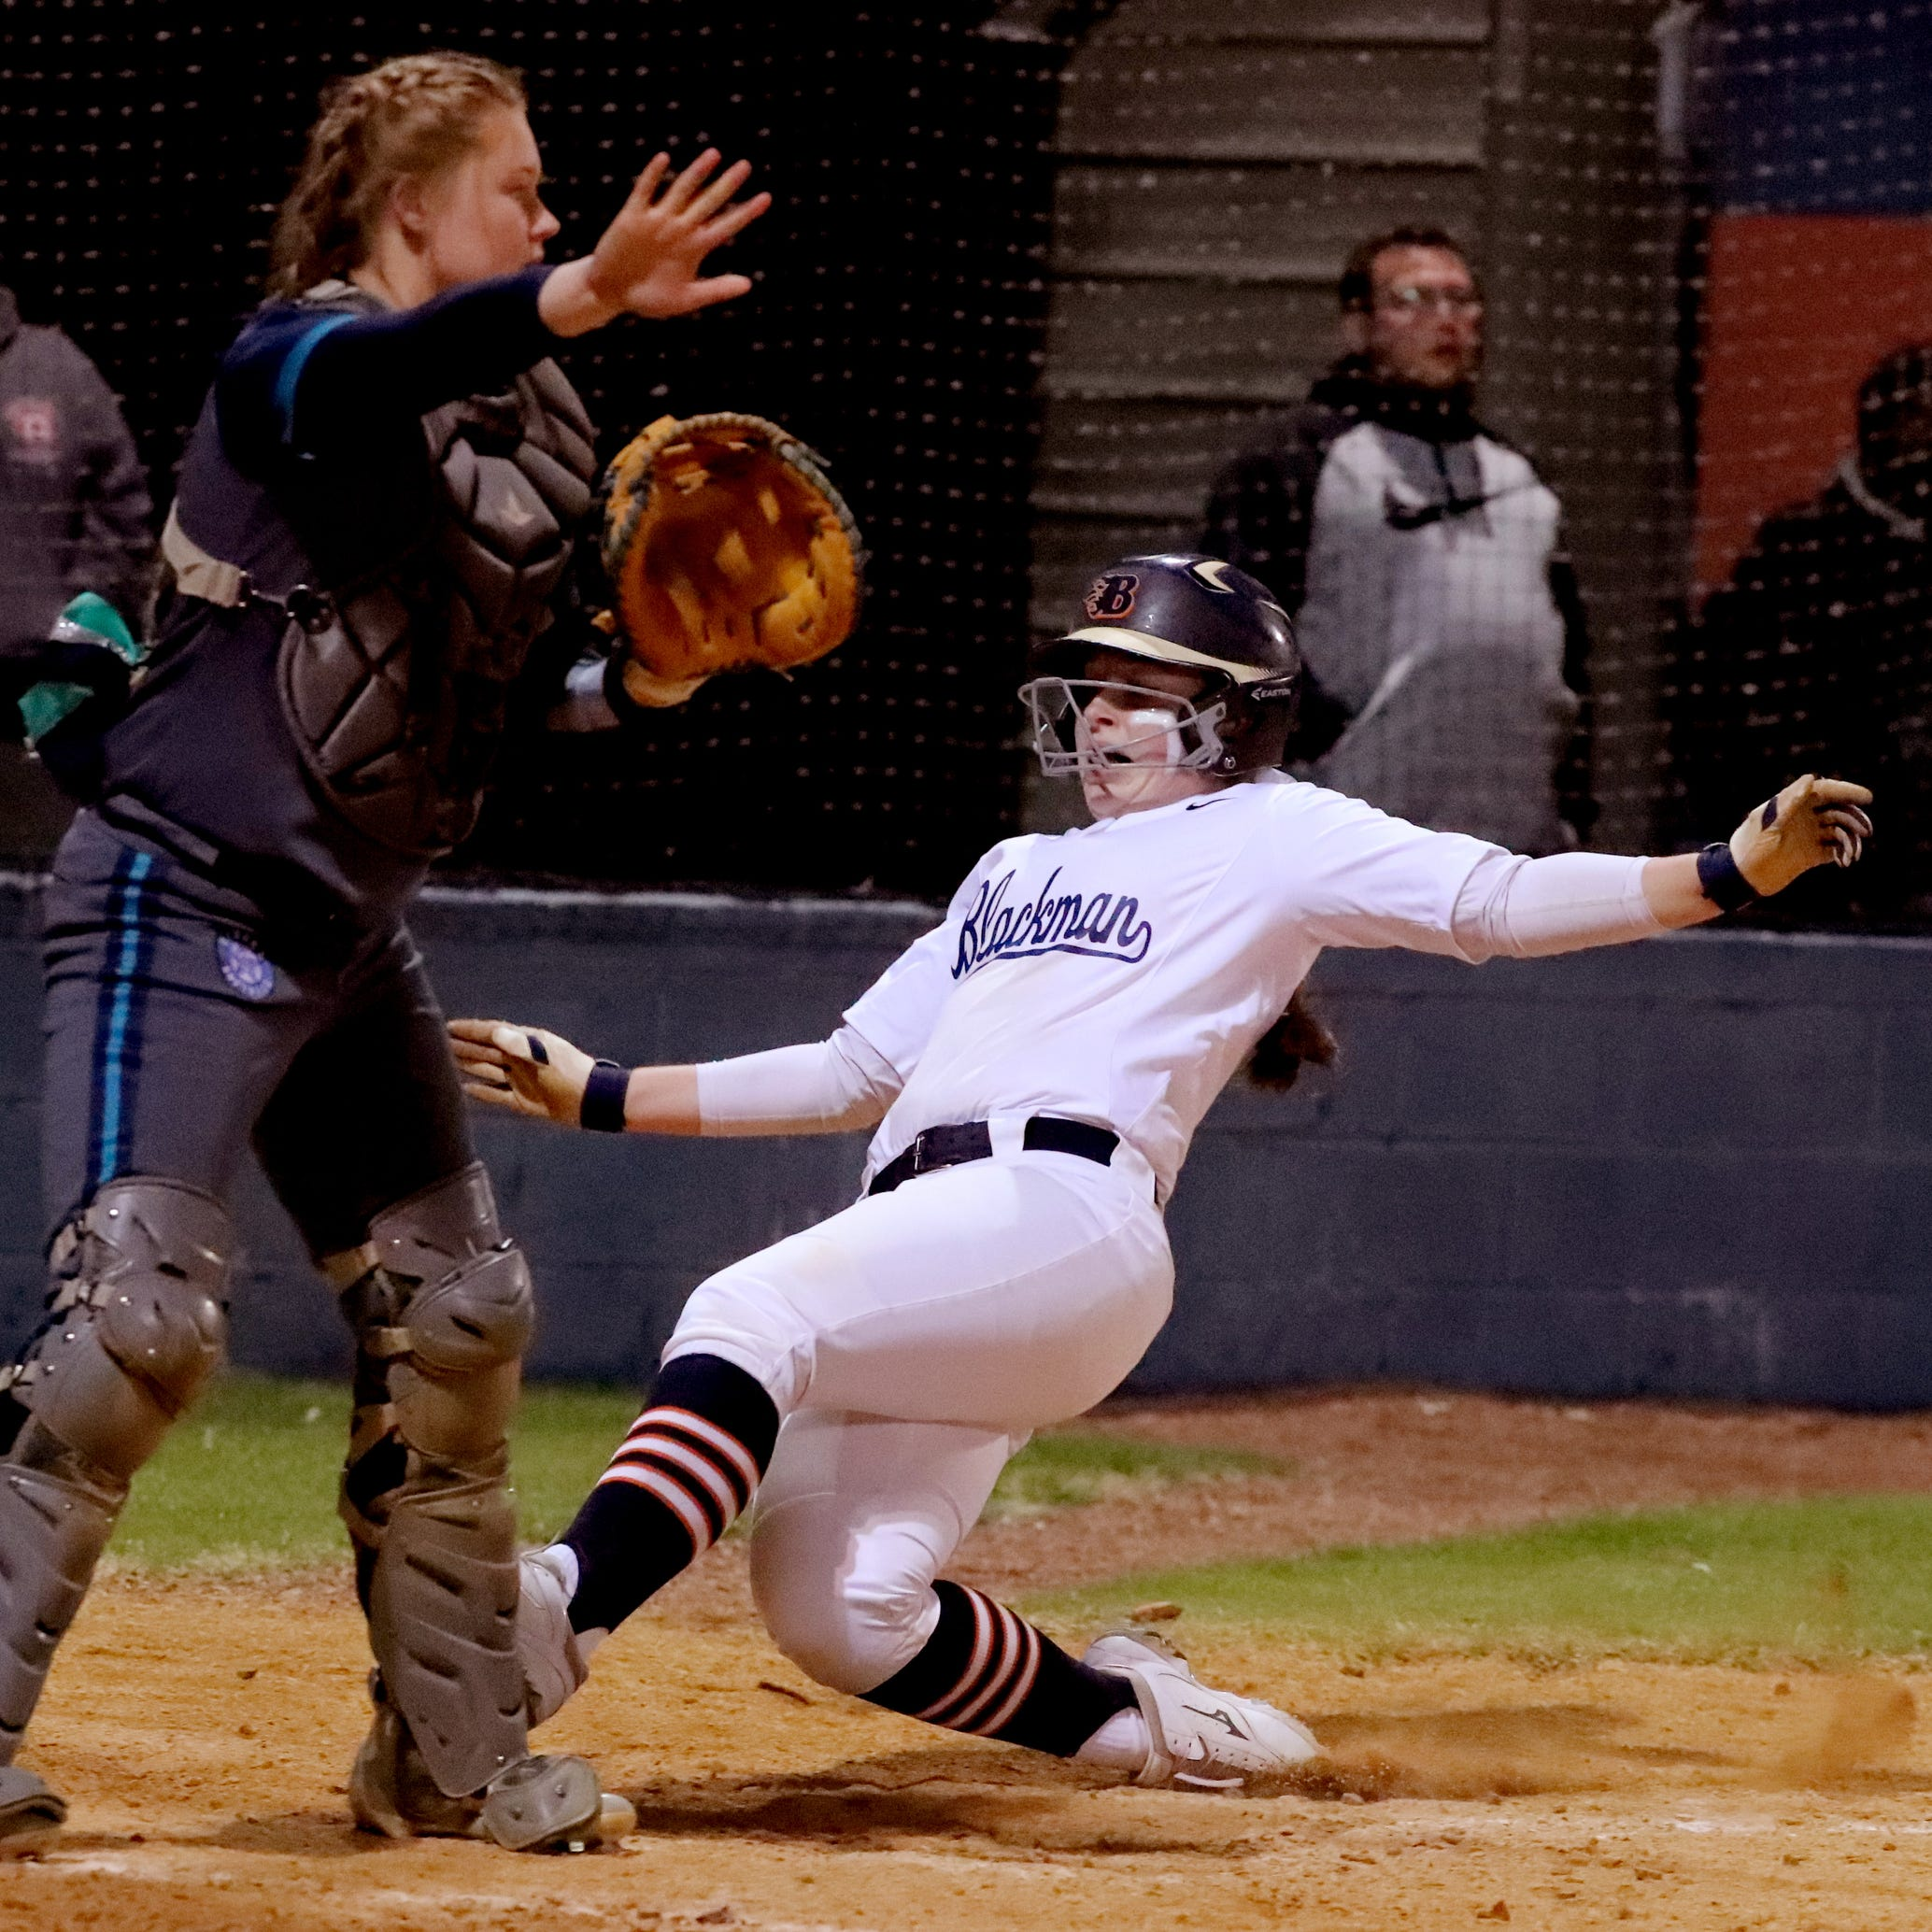 Blackman's Elaina McGill (16) slides safely into home to score a run as Siegel's Hannah Milhorn (4) waves off the throw, on Monday, March 18, 2019, at Blackman.